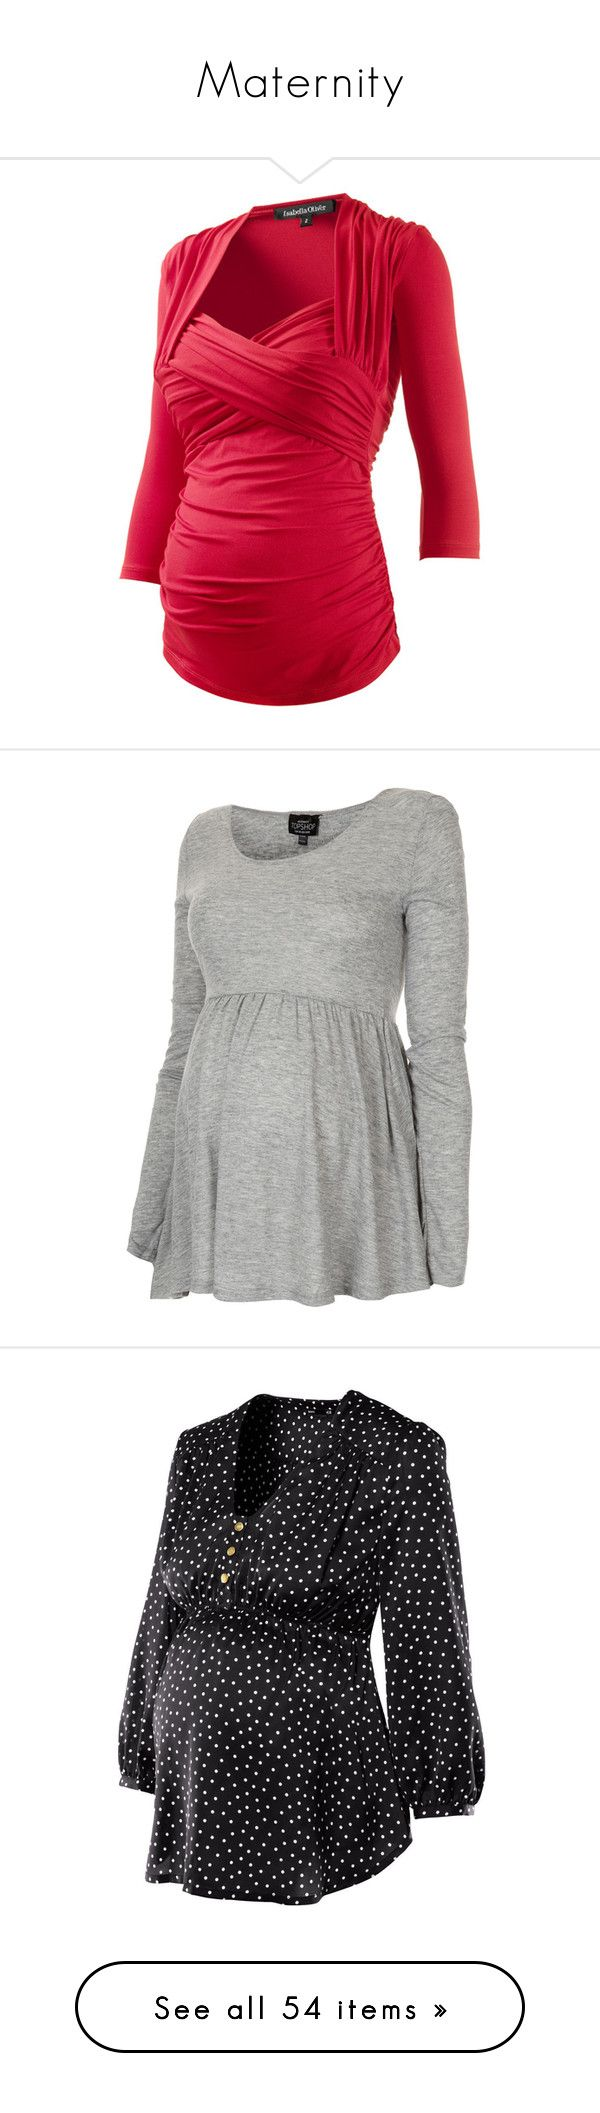 """""""Maternity"""" by antonia-kauss ❤ liked on Polyvore featuring maternity, pregnancy, pregnant, shirts, baby, tops, maternity clothes, maternity tops, light grey and grávida"""